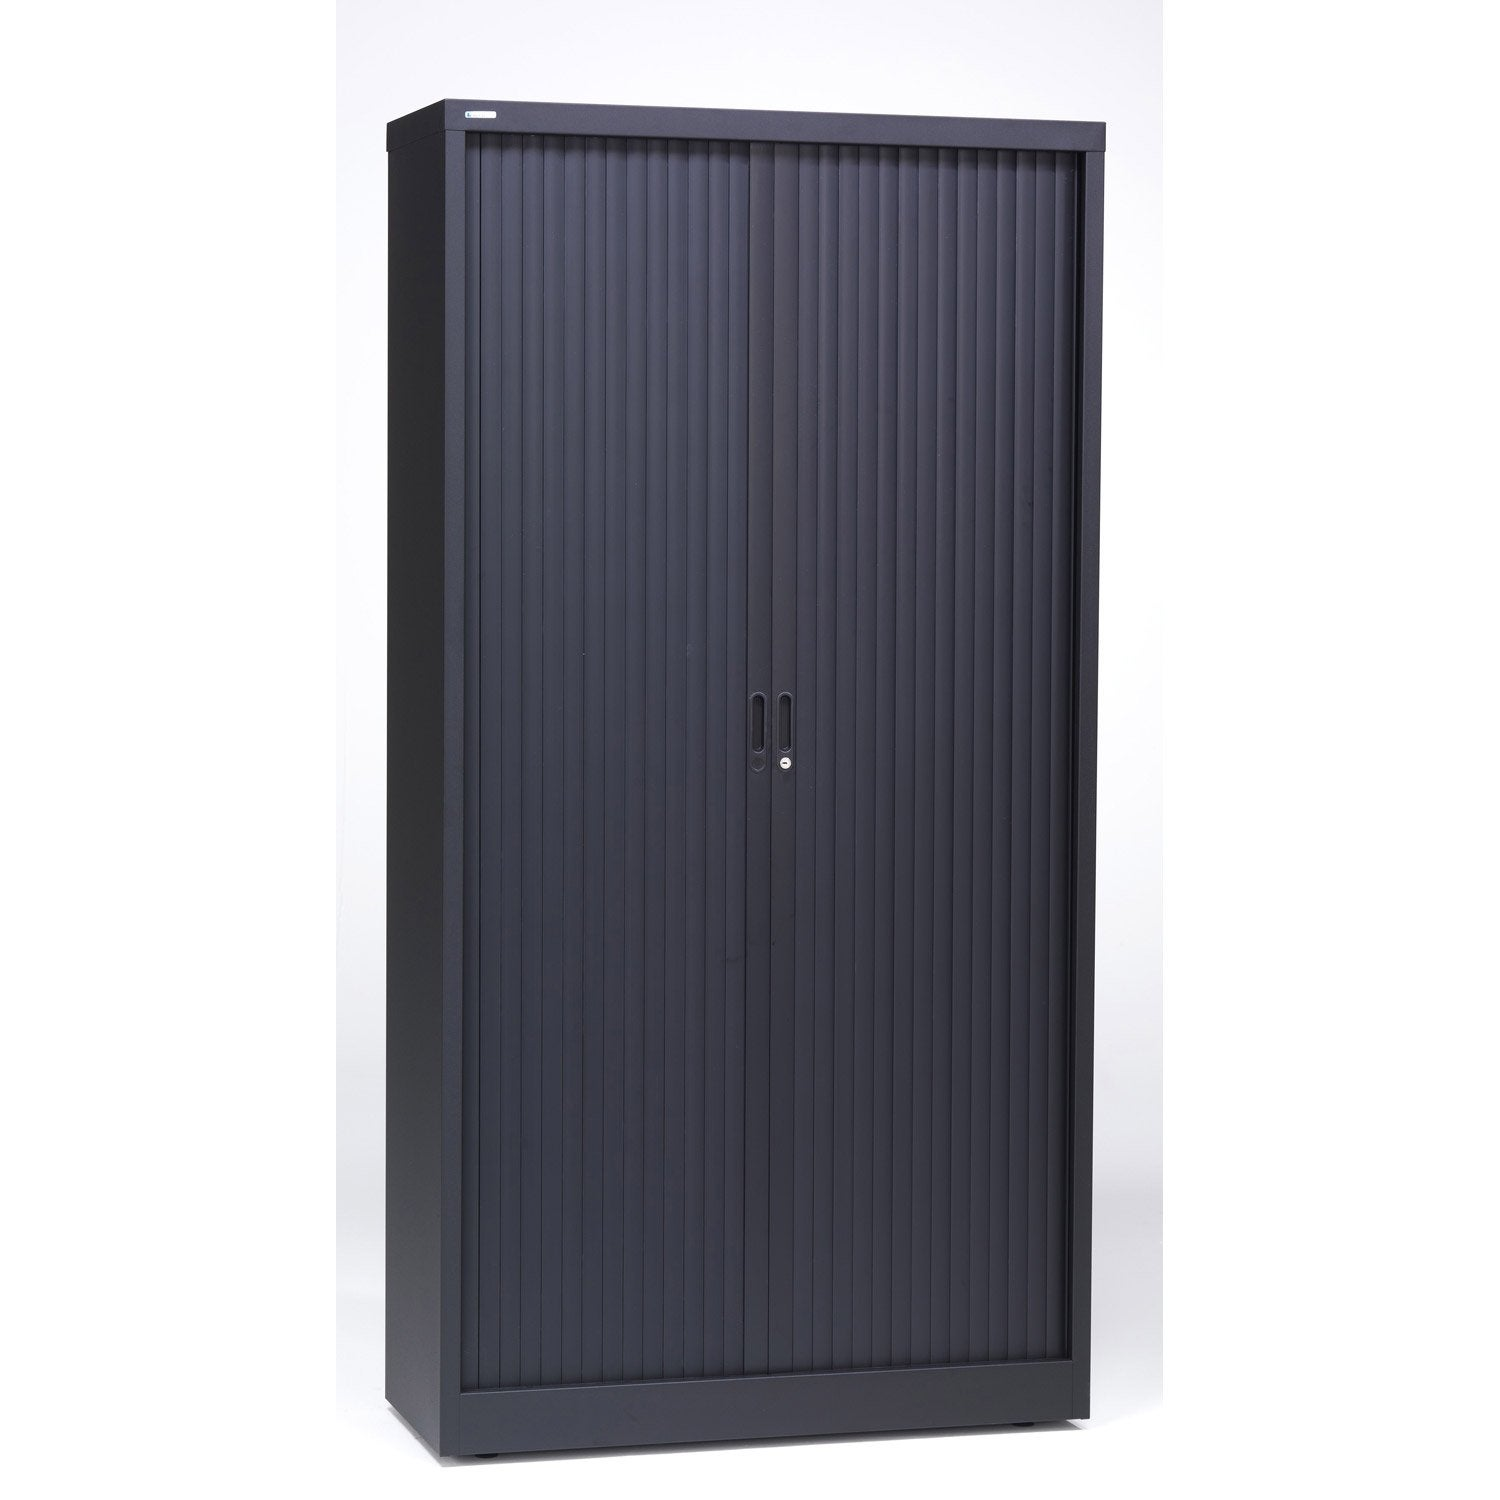 Armoire haute m tal 4 tablettes jds x x for Biohort leroy merlin